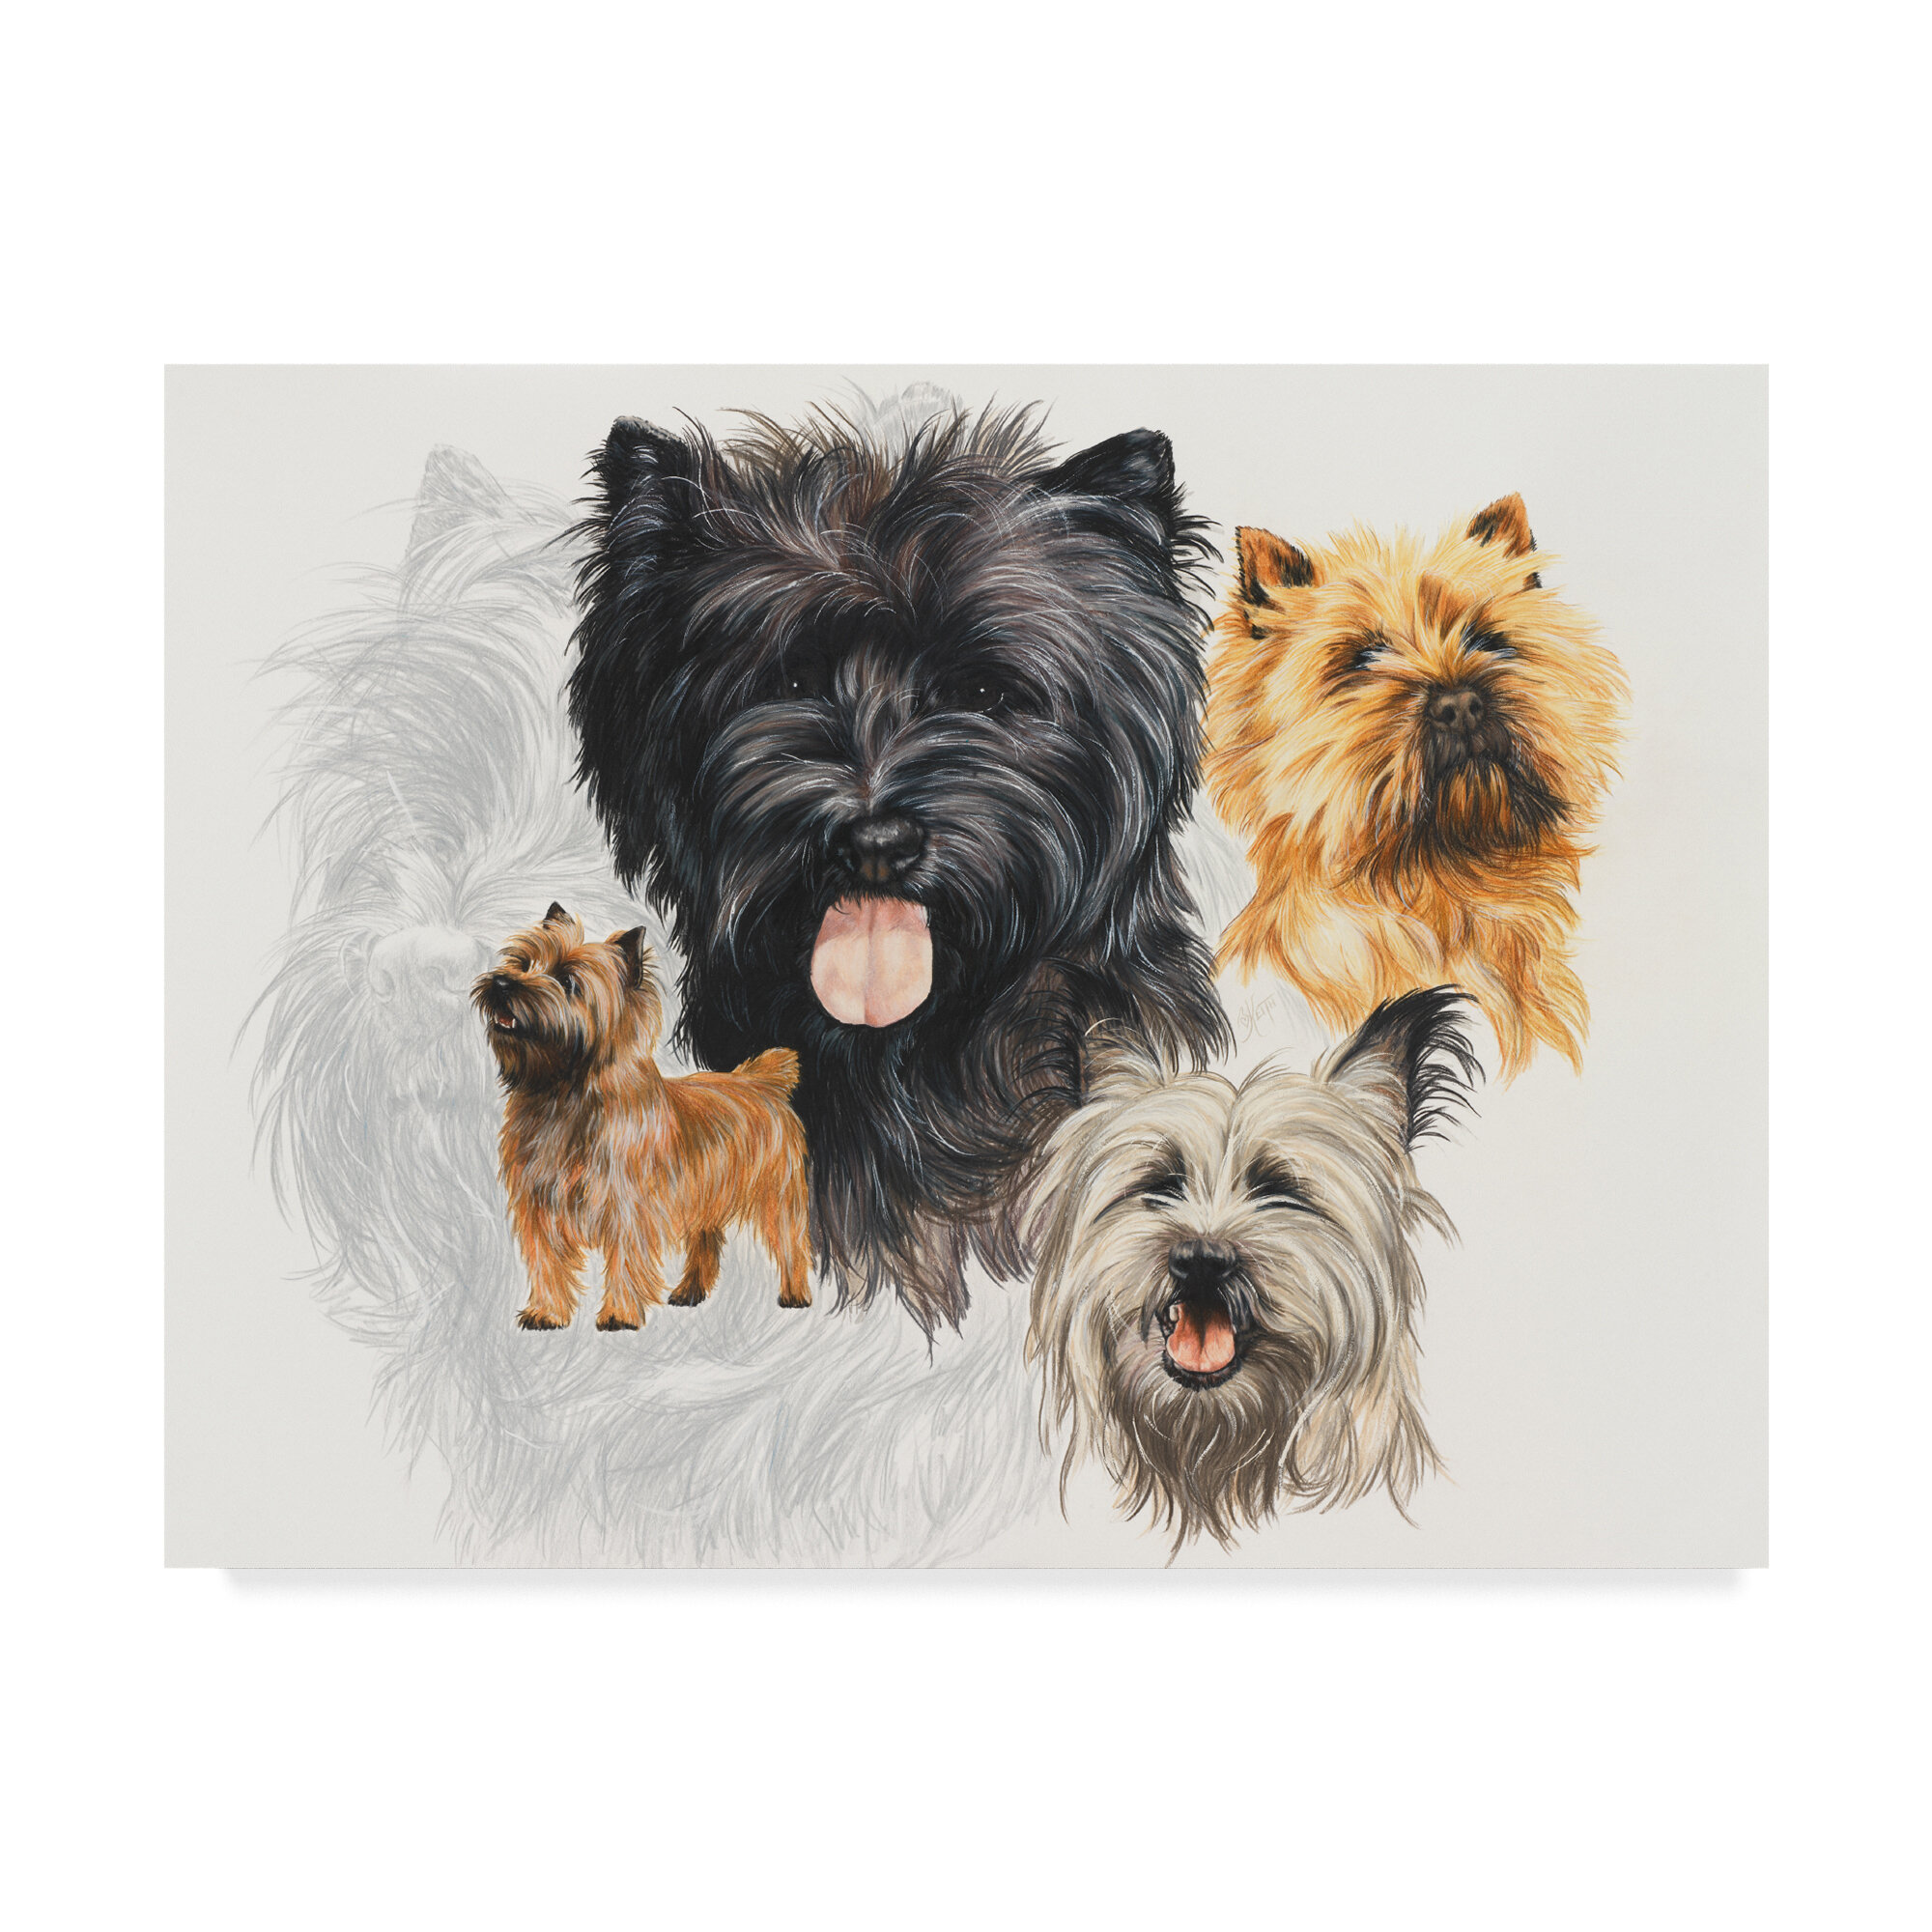 Icart Cairn Terrier Dogs Lady Singing Vintage Poster Reproduction FREE SHIPPING